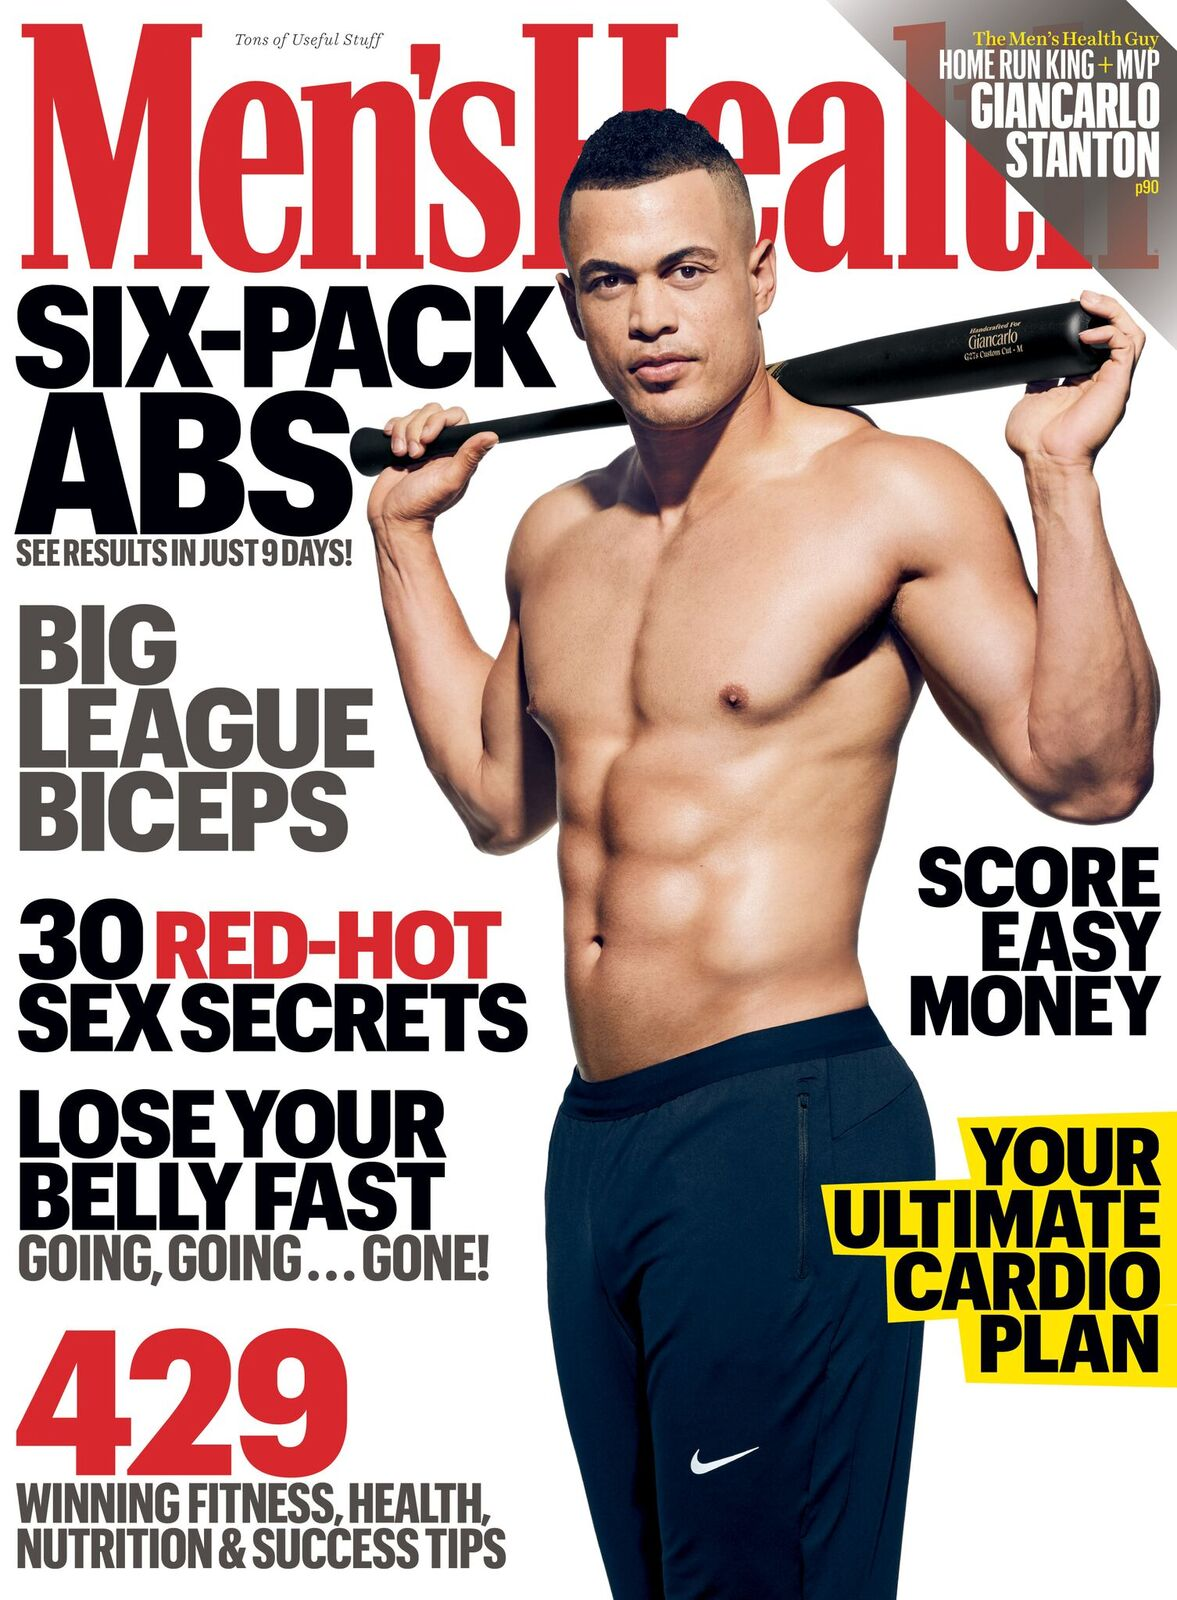 How many kj per day lose weight